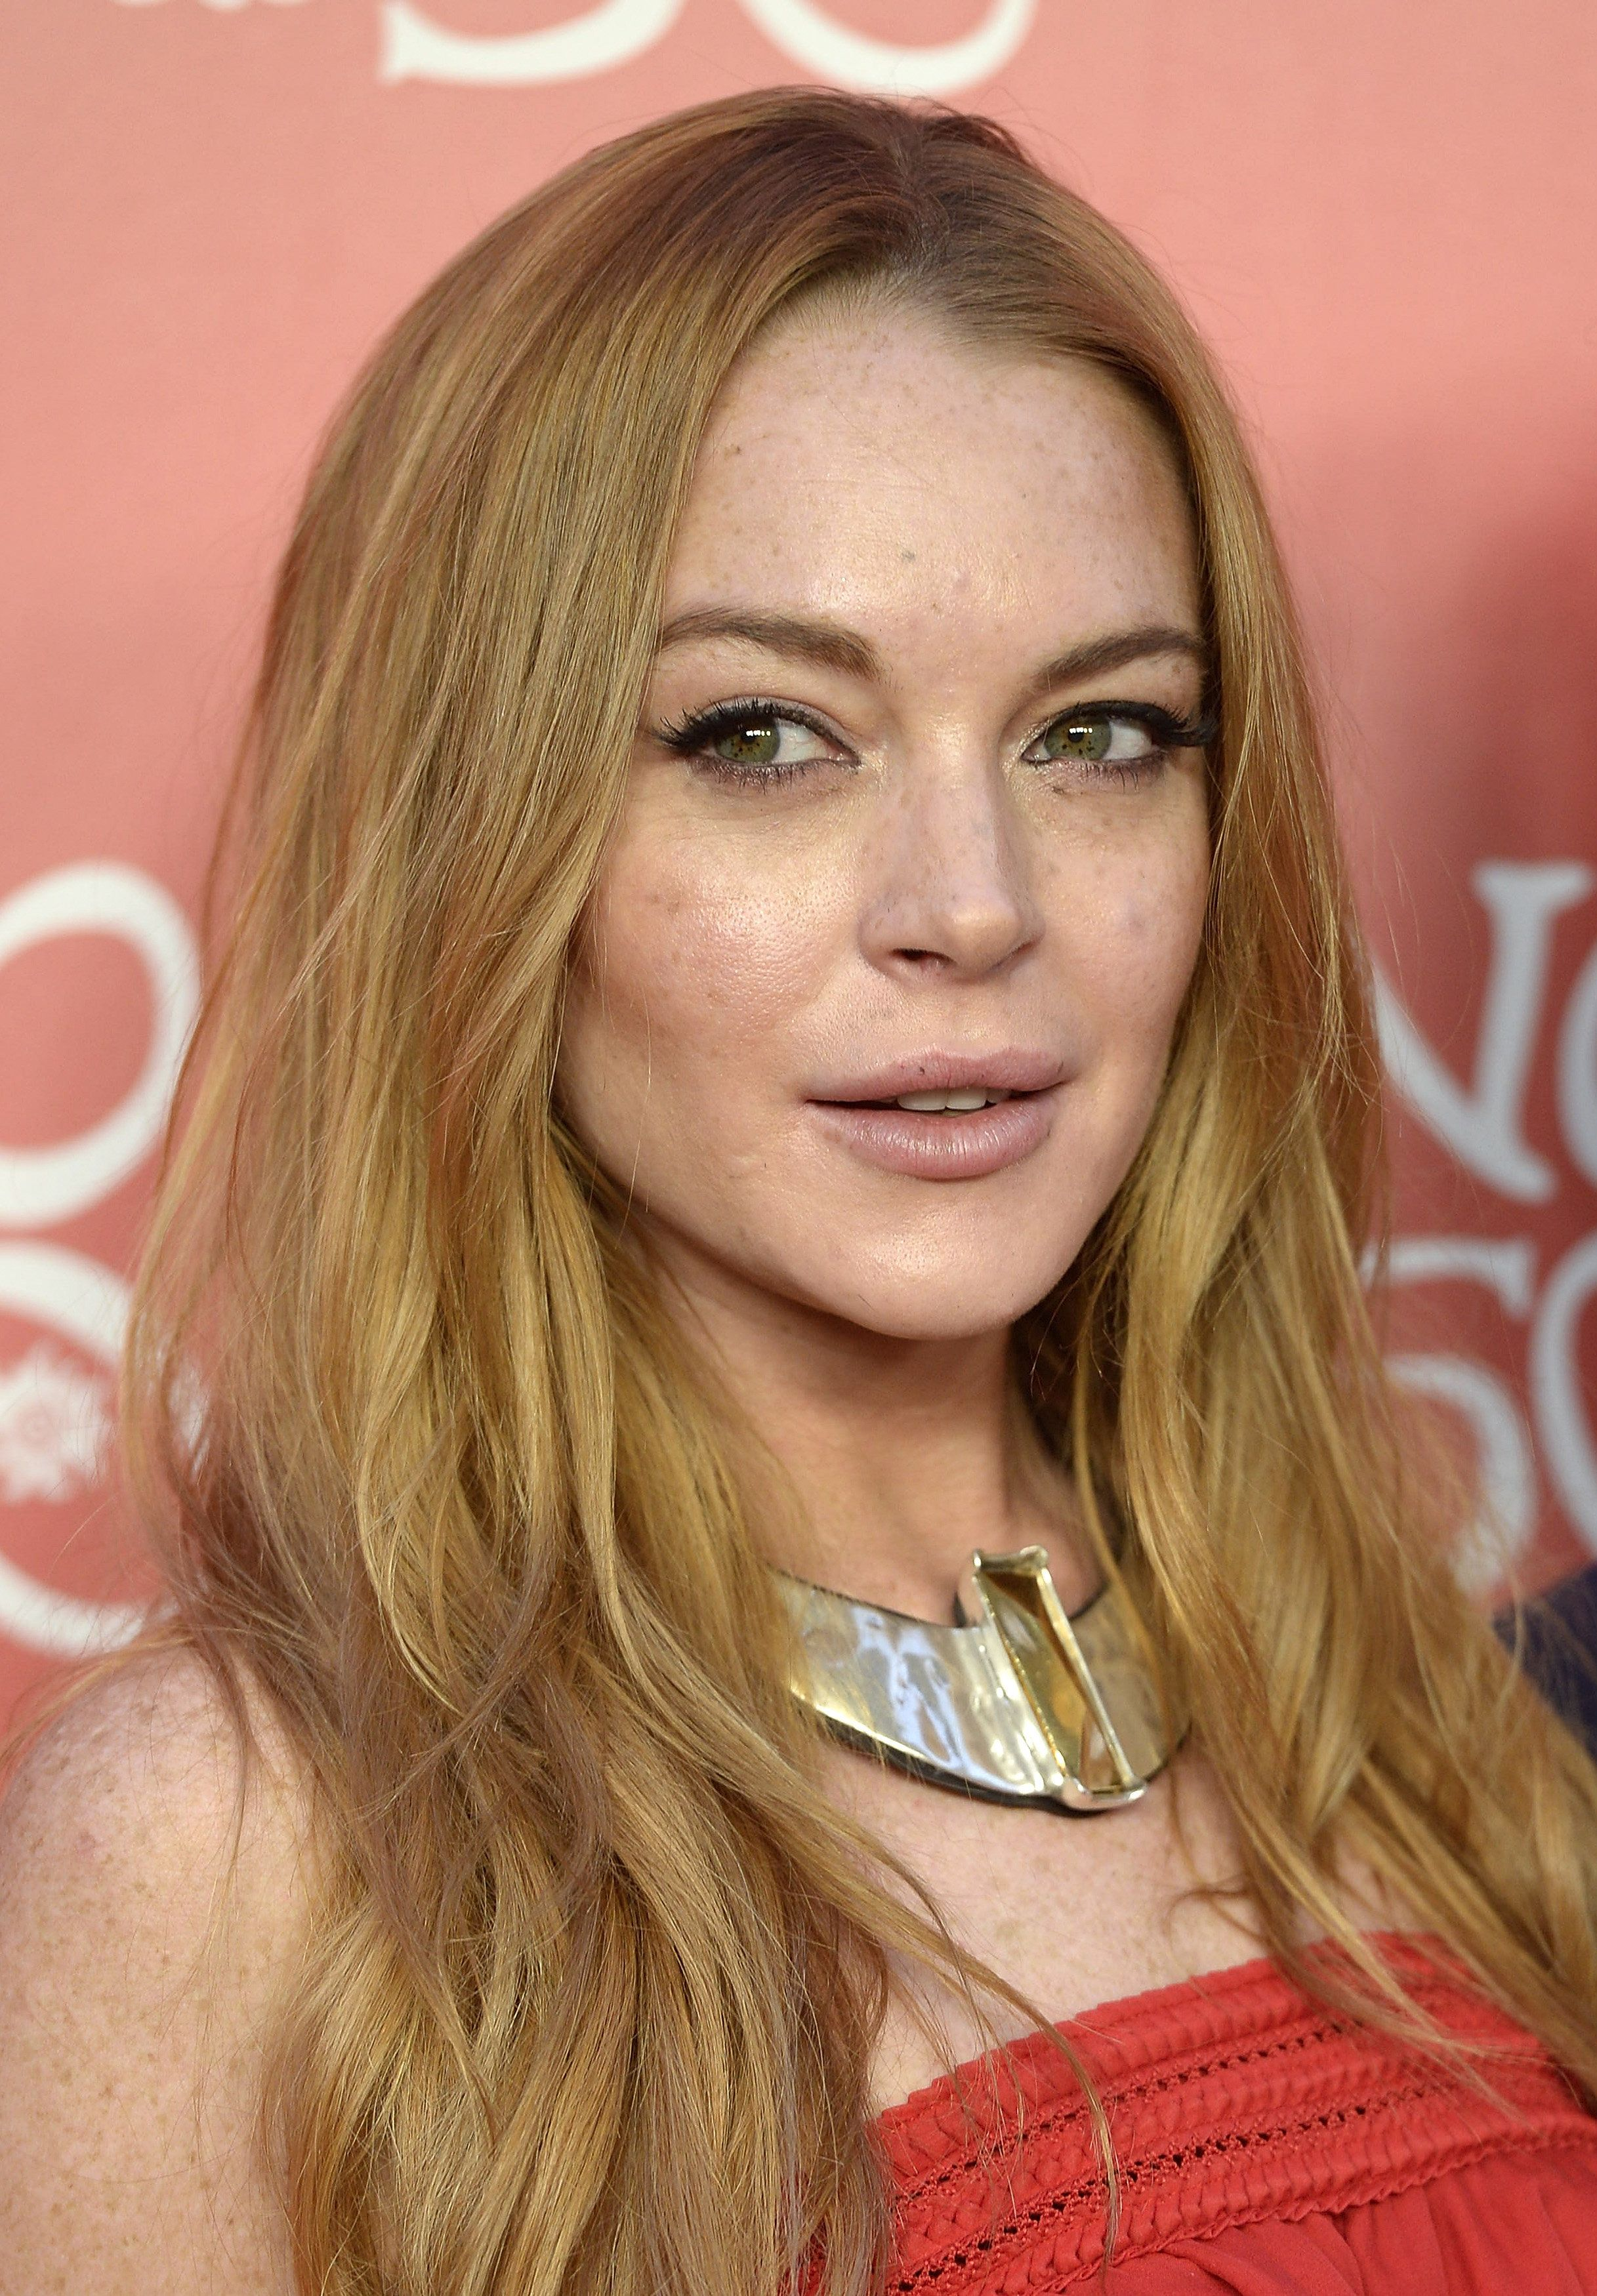 All lindsay lohan pictures Lindsay Lohan Latest Photos - Page 1 Just Jared